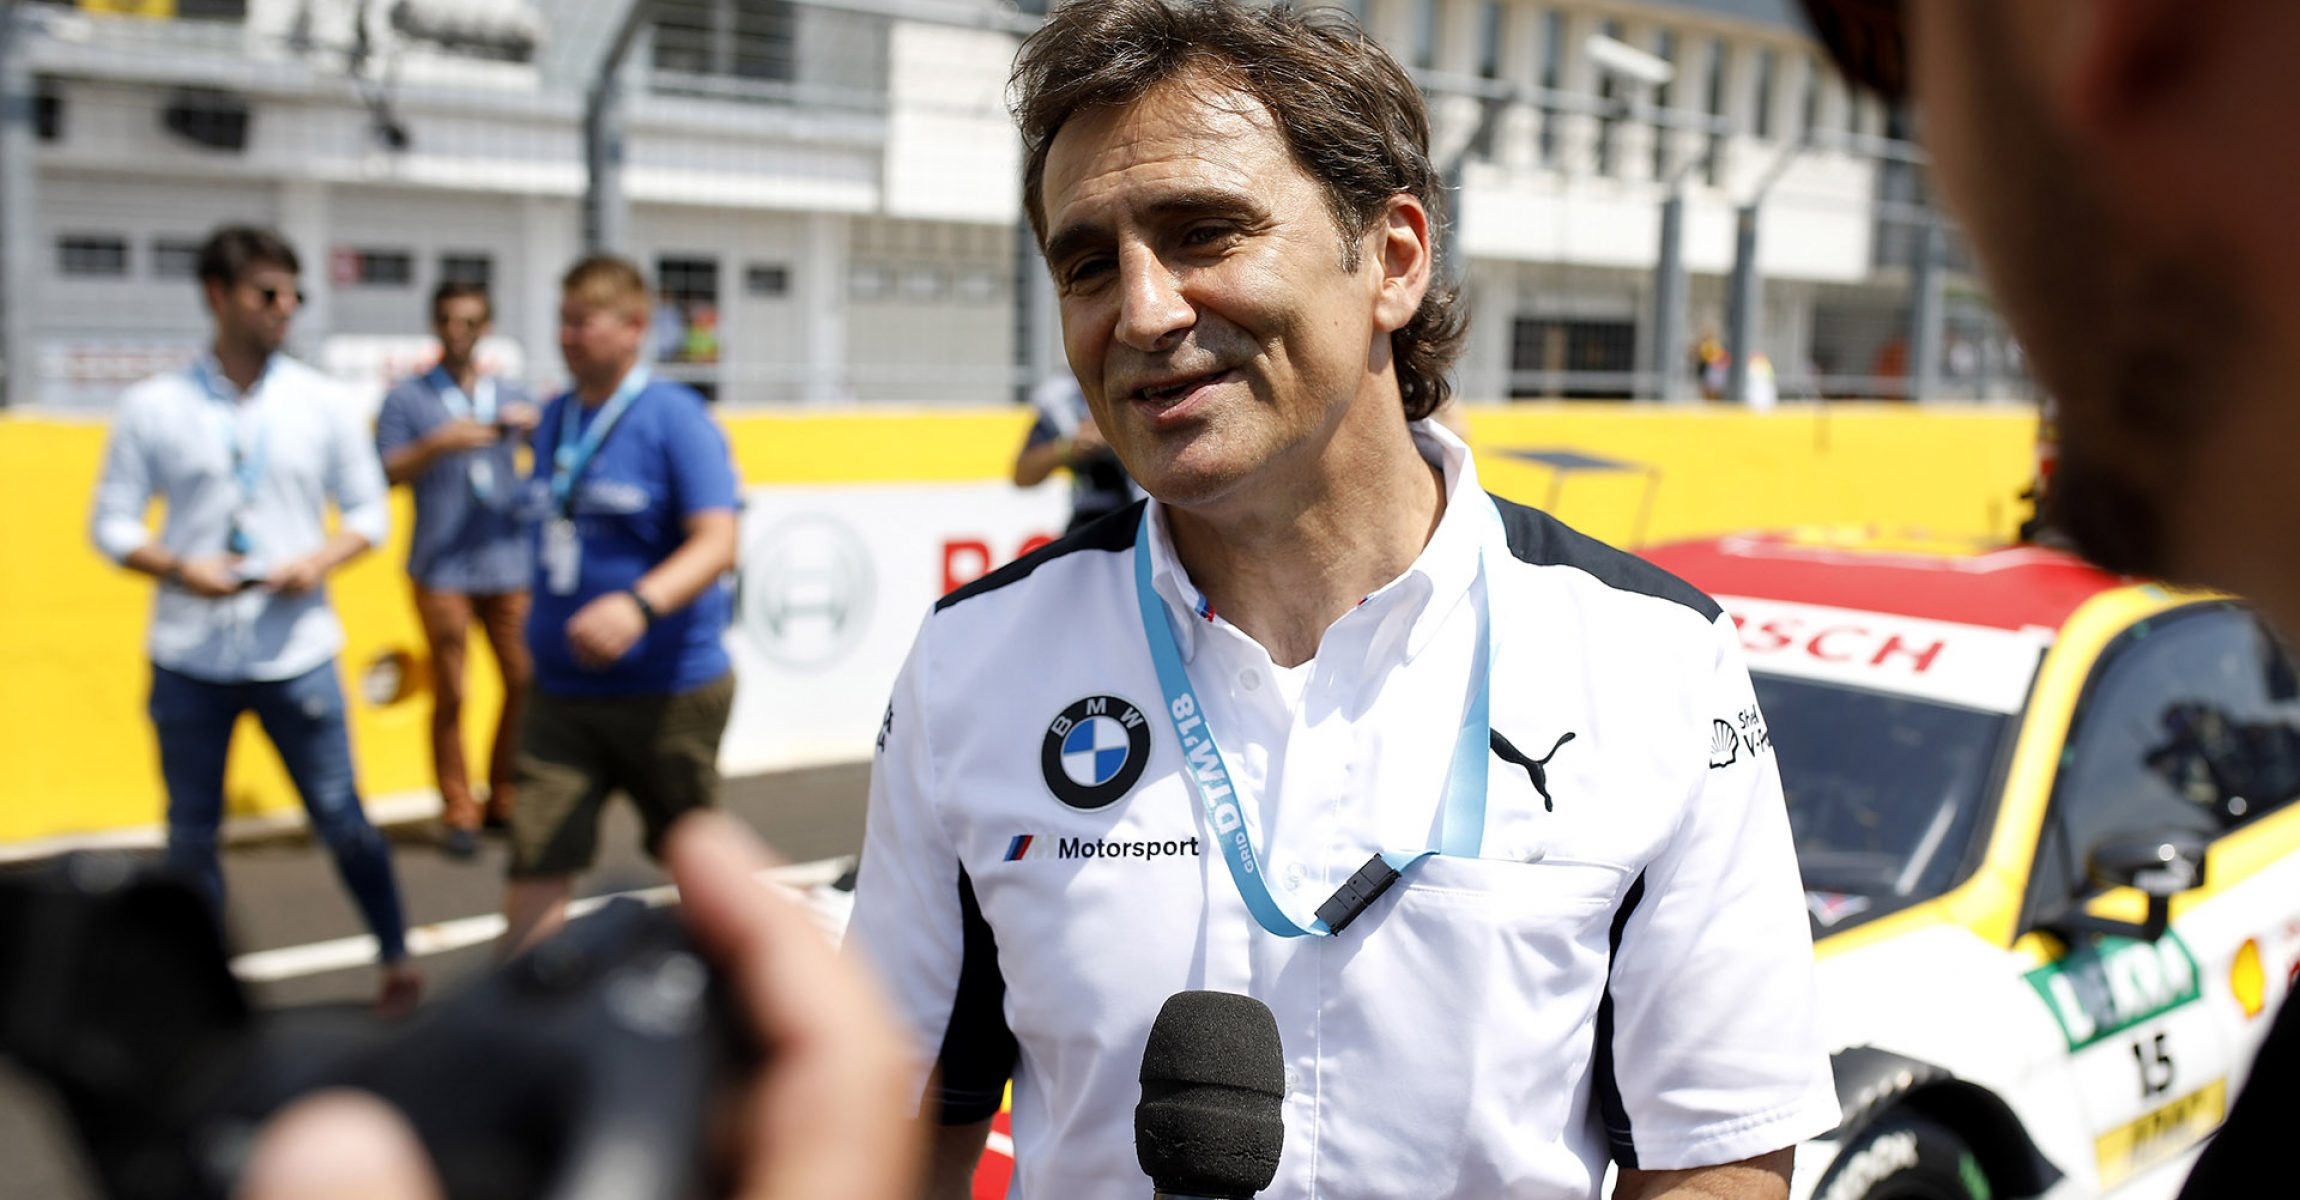 Hungaroring (HUN) 2nd June 2018. BMW M Motorsport, DTM, Round 3, Alessandro Zanardi (ITA), BMW works driver and BMW brand ambassador